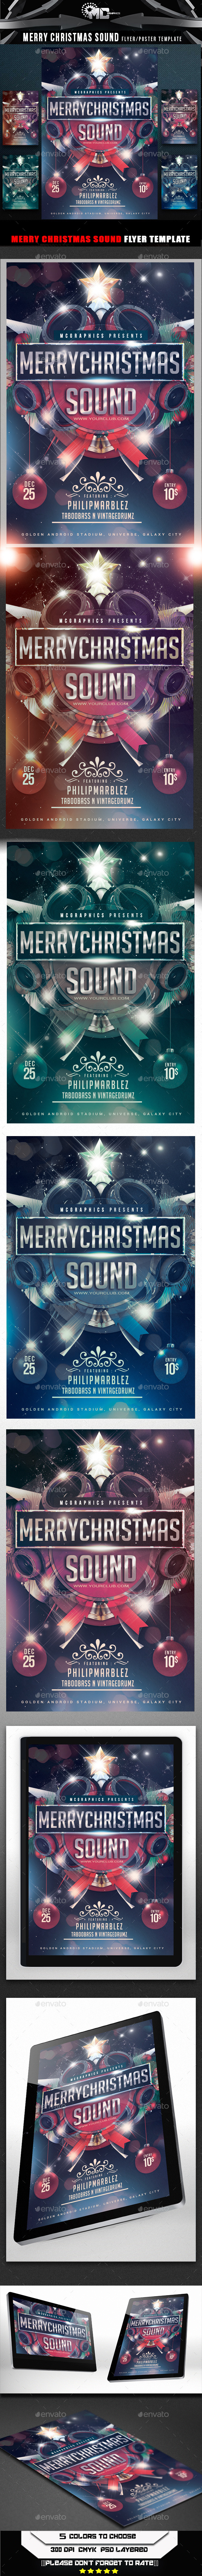 GraphicRiver Merry Christmas Sound Flyer Template 9562705